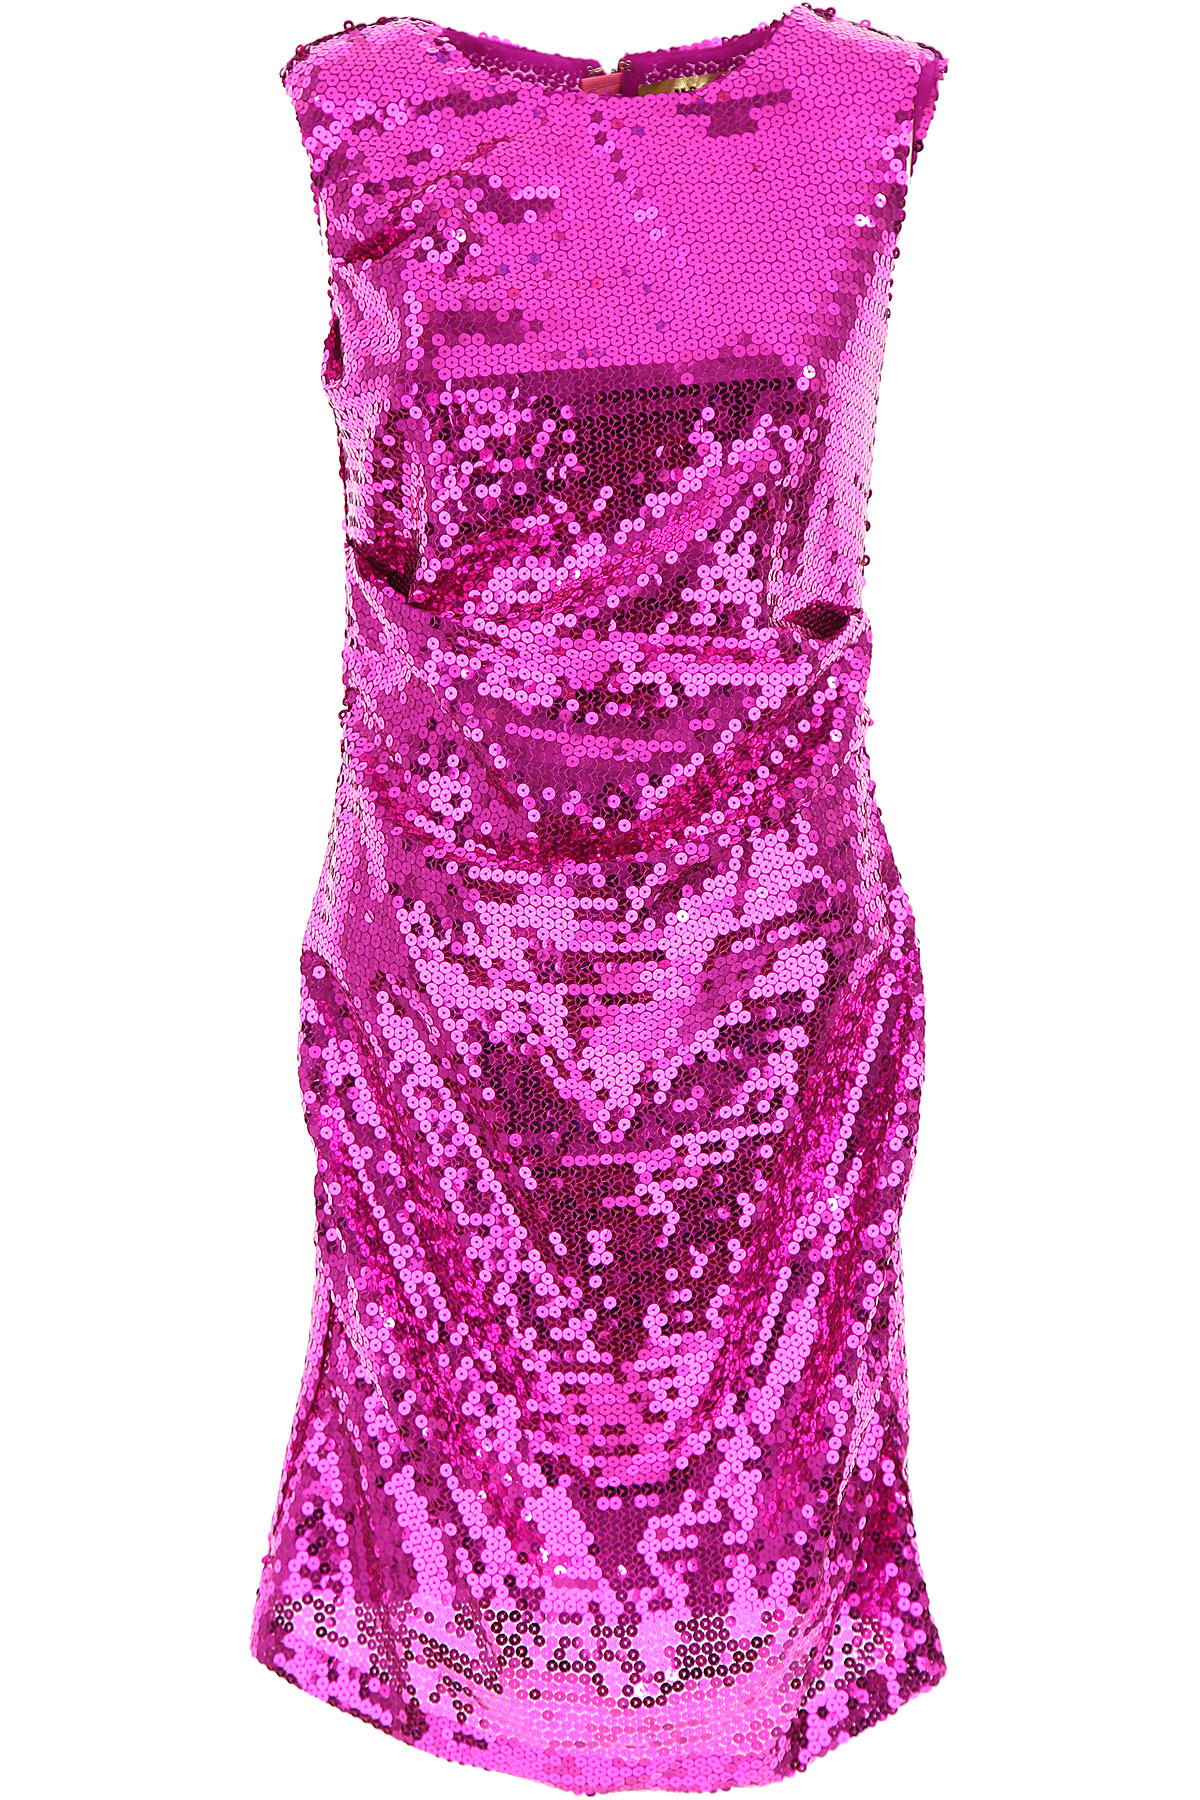 MSGM Dress for Women, Evening Cocktail Party, Fuchsia, polyester, 2017, 4 6